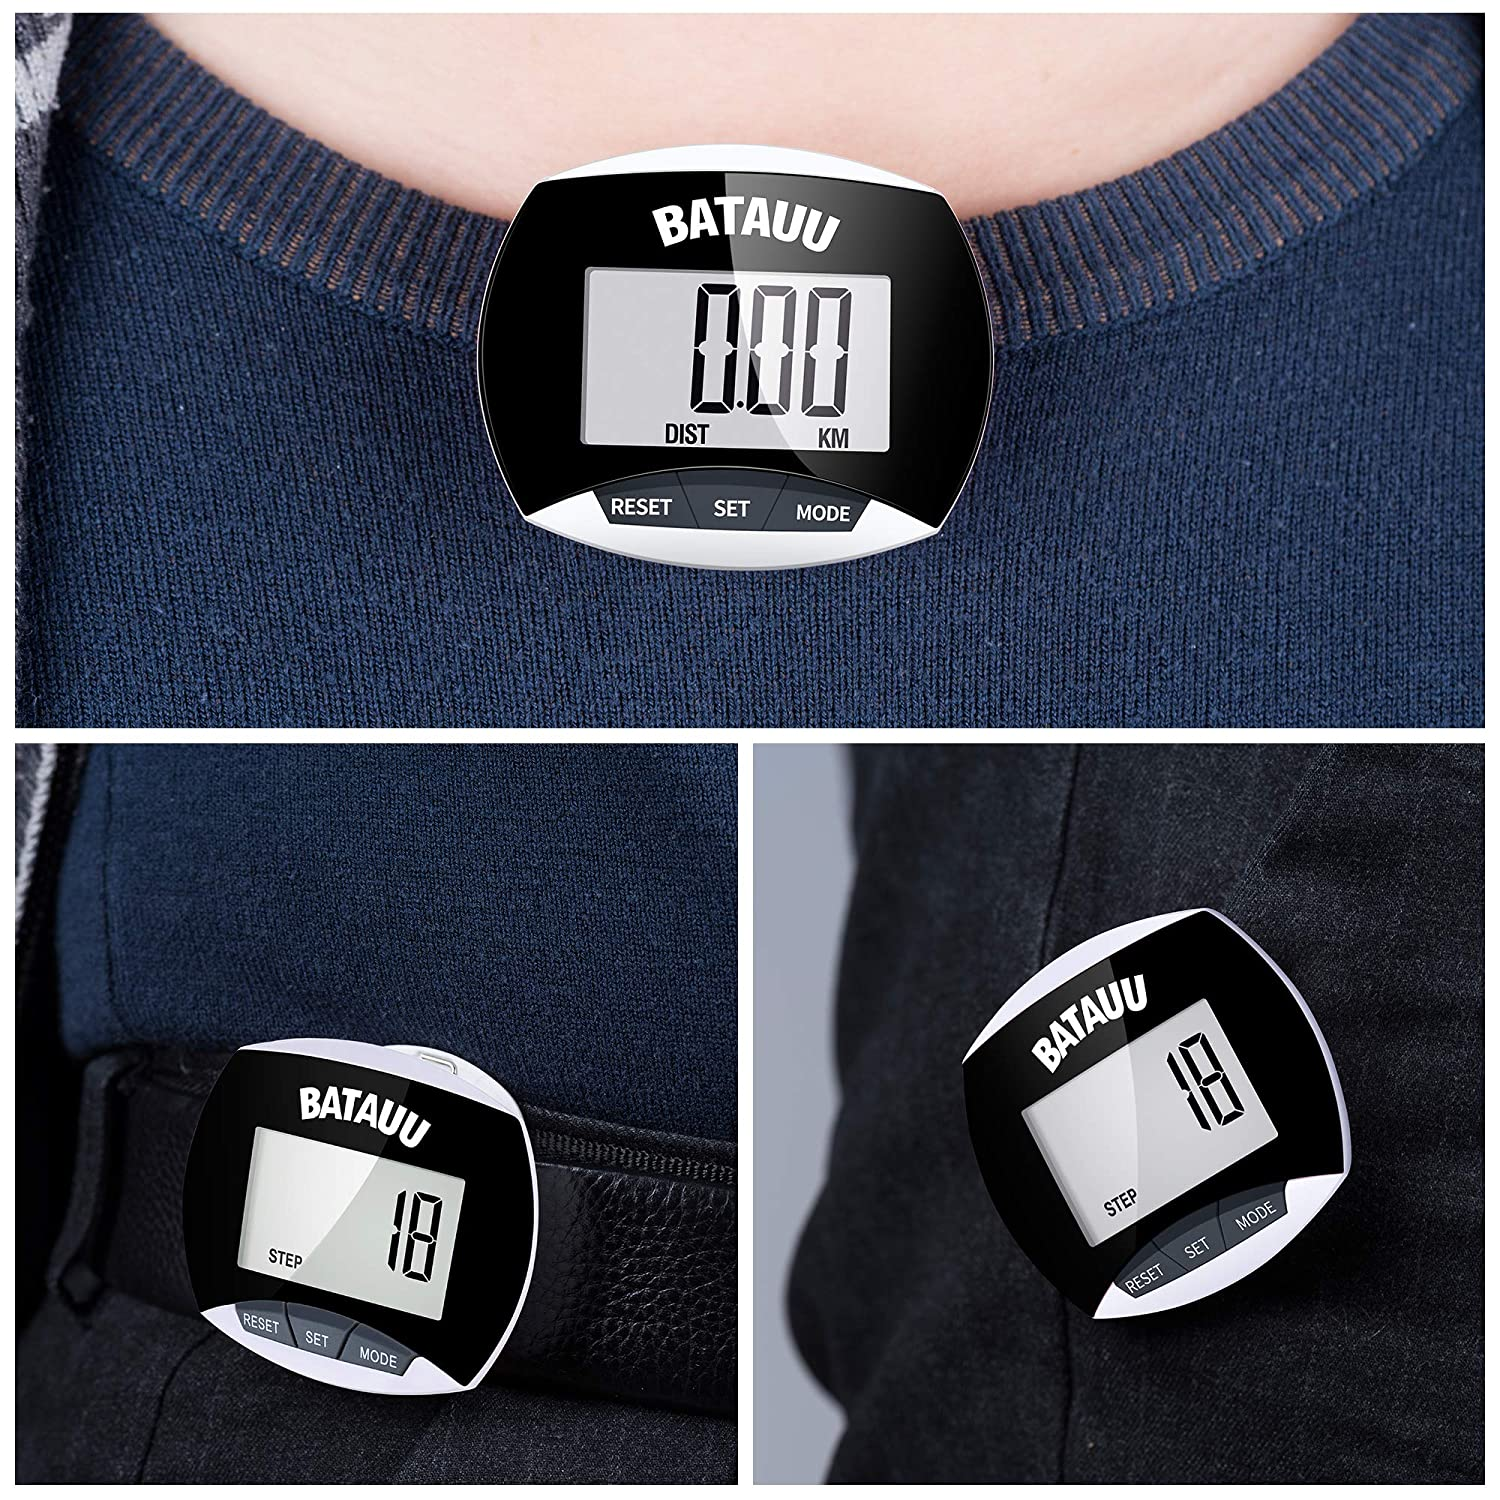 Simply Operation Walking Running Pedometer with Calories Burned and Steps Counting BATAUU Best Pedometer Black